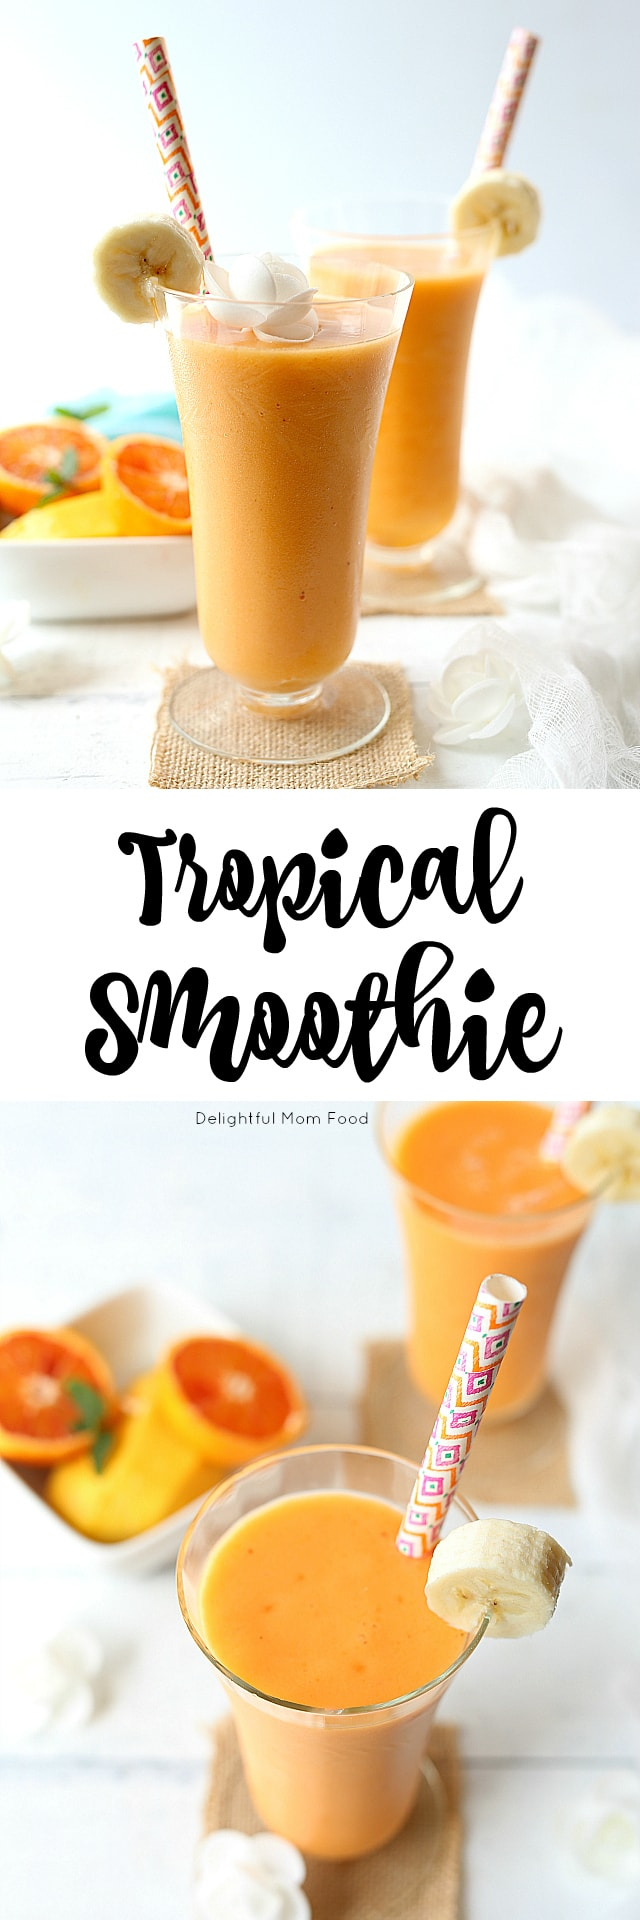 A tropical smoothie that will have you dreaming of being on an island by the sea! Made with carrots, pineapple, mango, banana, lime, blood oranges, turmeric and ginger.